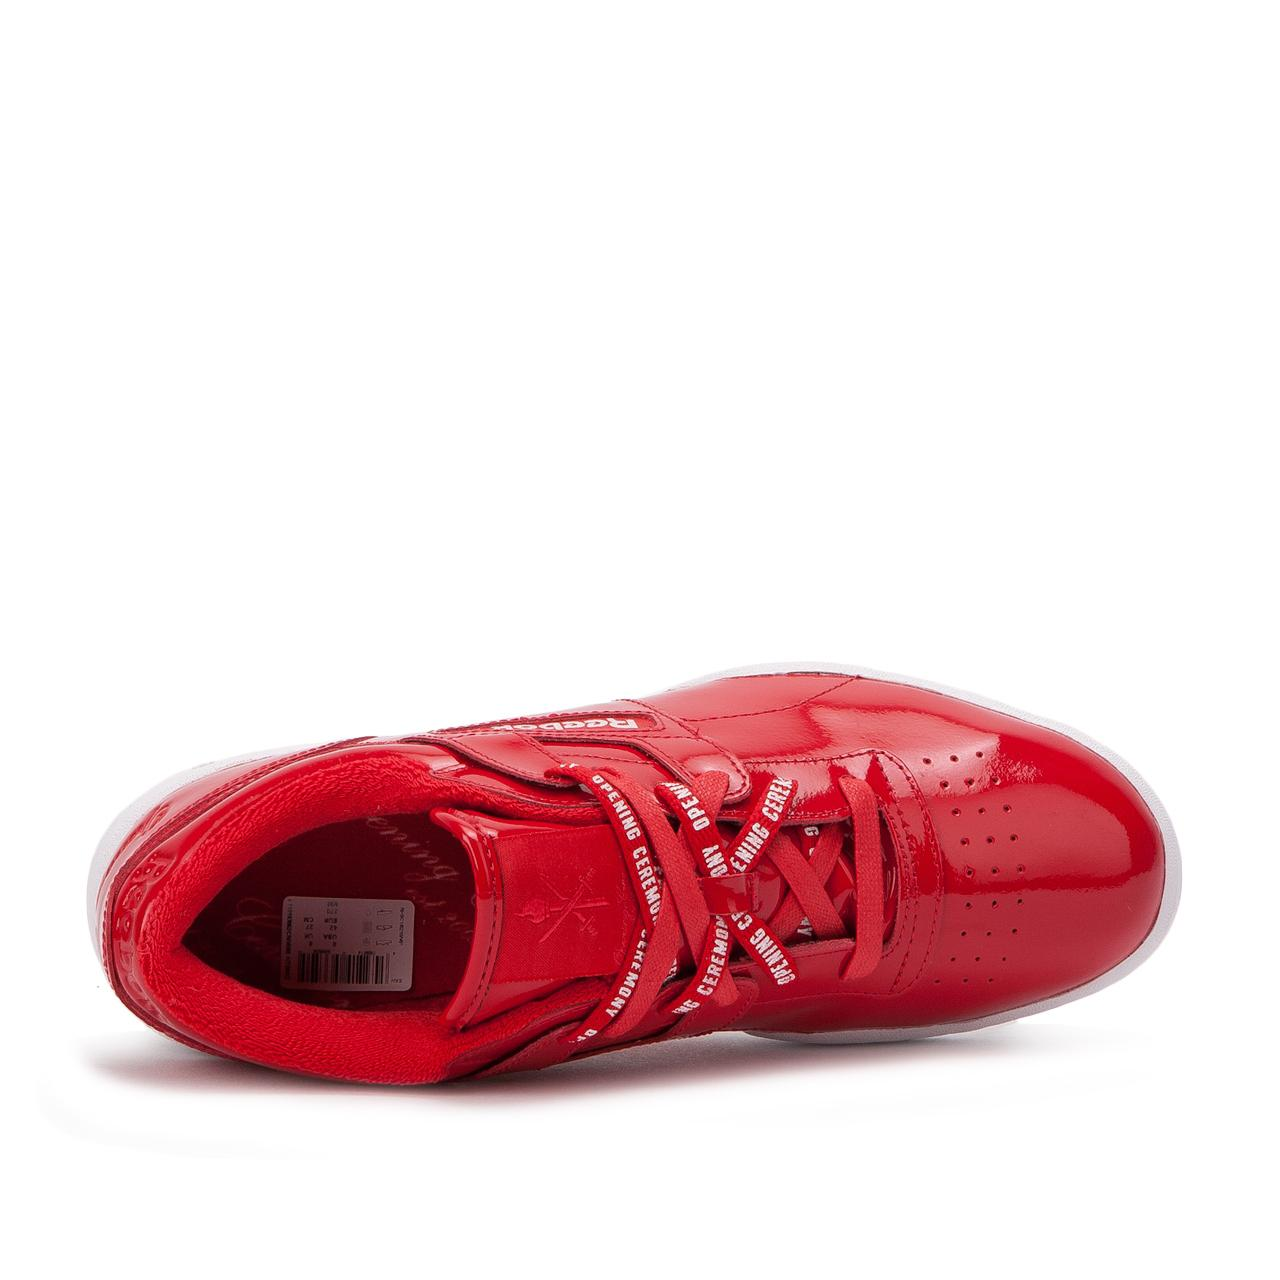 8dfb773da42f6c Reebok - Red X Opening Ceremony Workout Lo Clean Oc for Men - Lyst. View  fullscreen